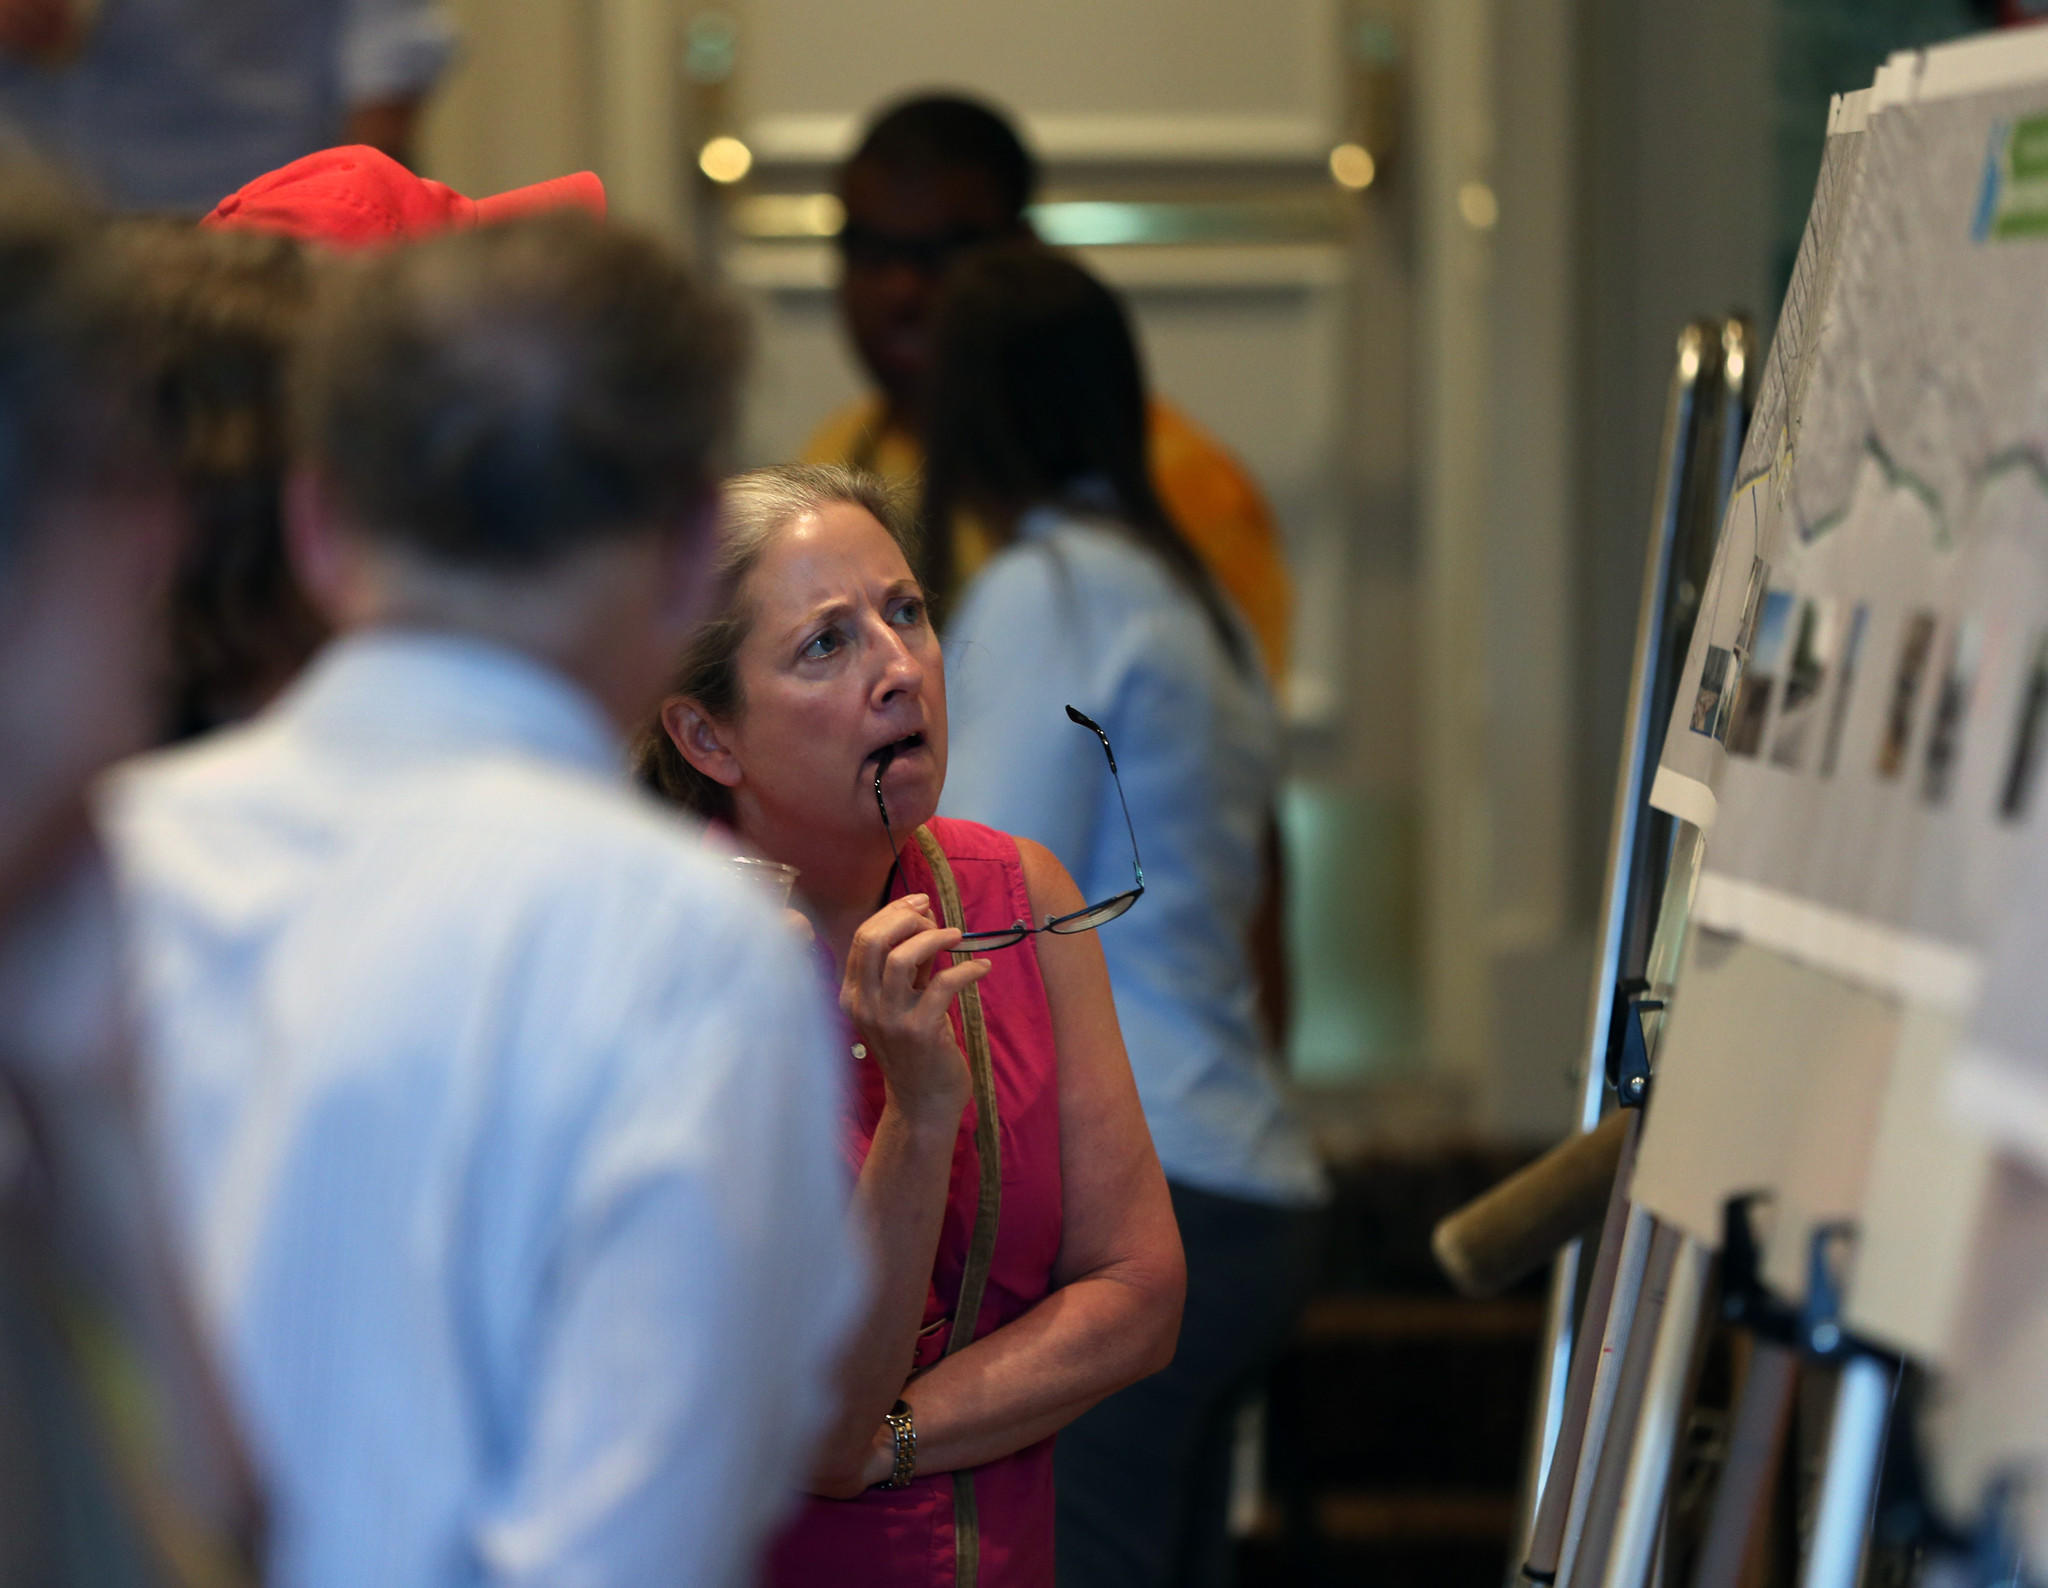 Nora Handler, of the Lakeview neighborhood in Chicago, looks over photos and illustrations of the northern stretch of Lake Shore Drive during a public meeting at the Drake Hotel in Chicago on Tuesday.